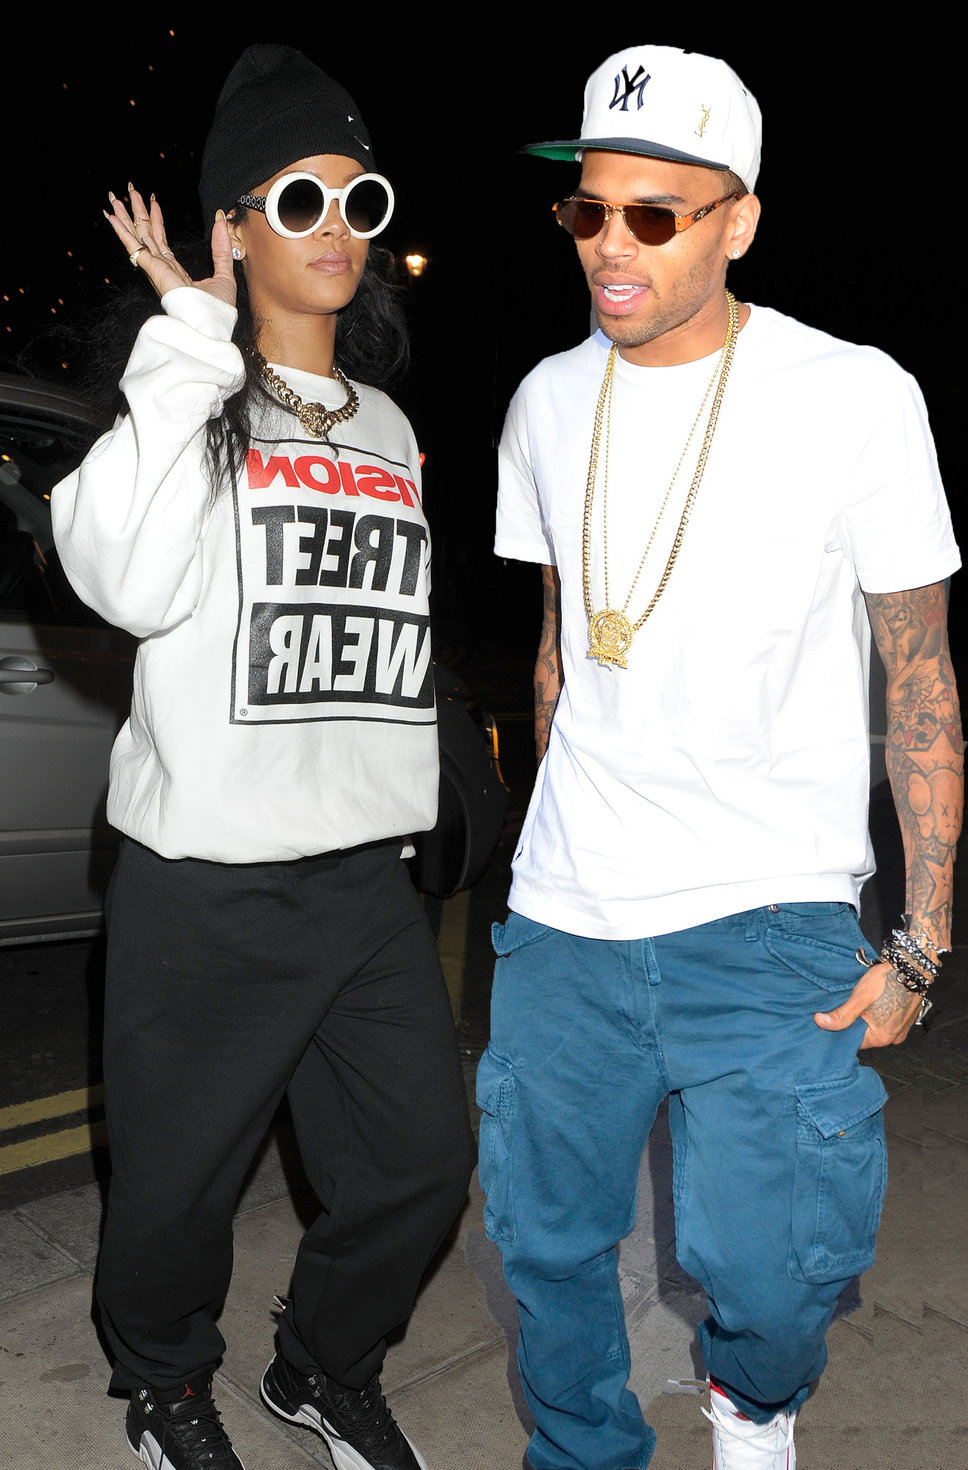 Chris brown clothing store. Cheap online clothing stores